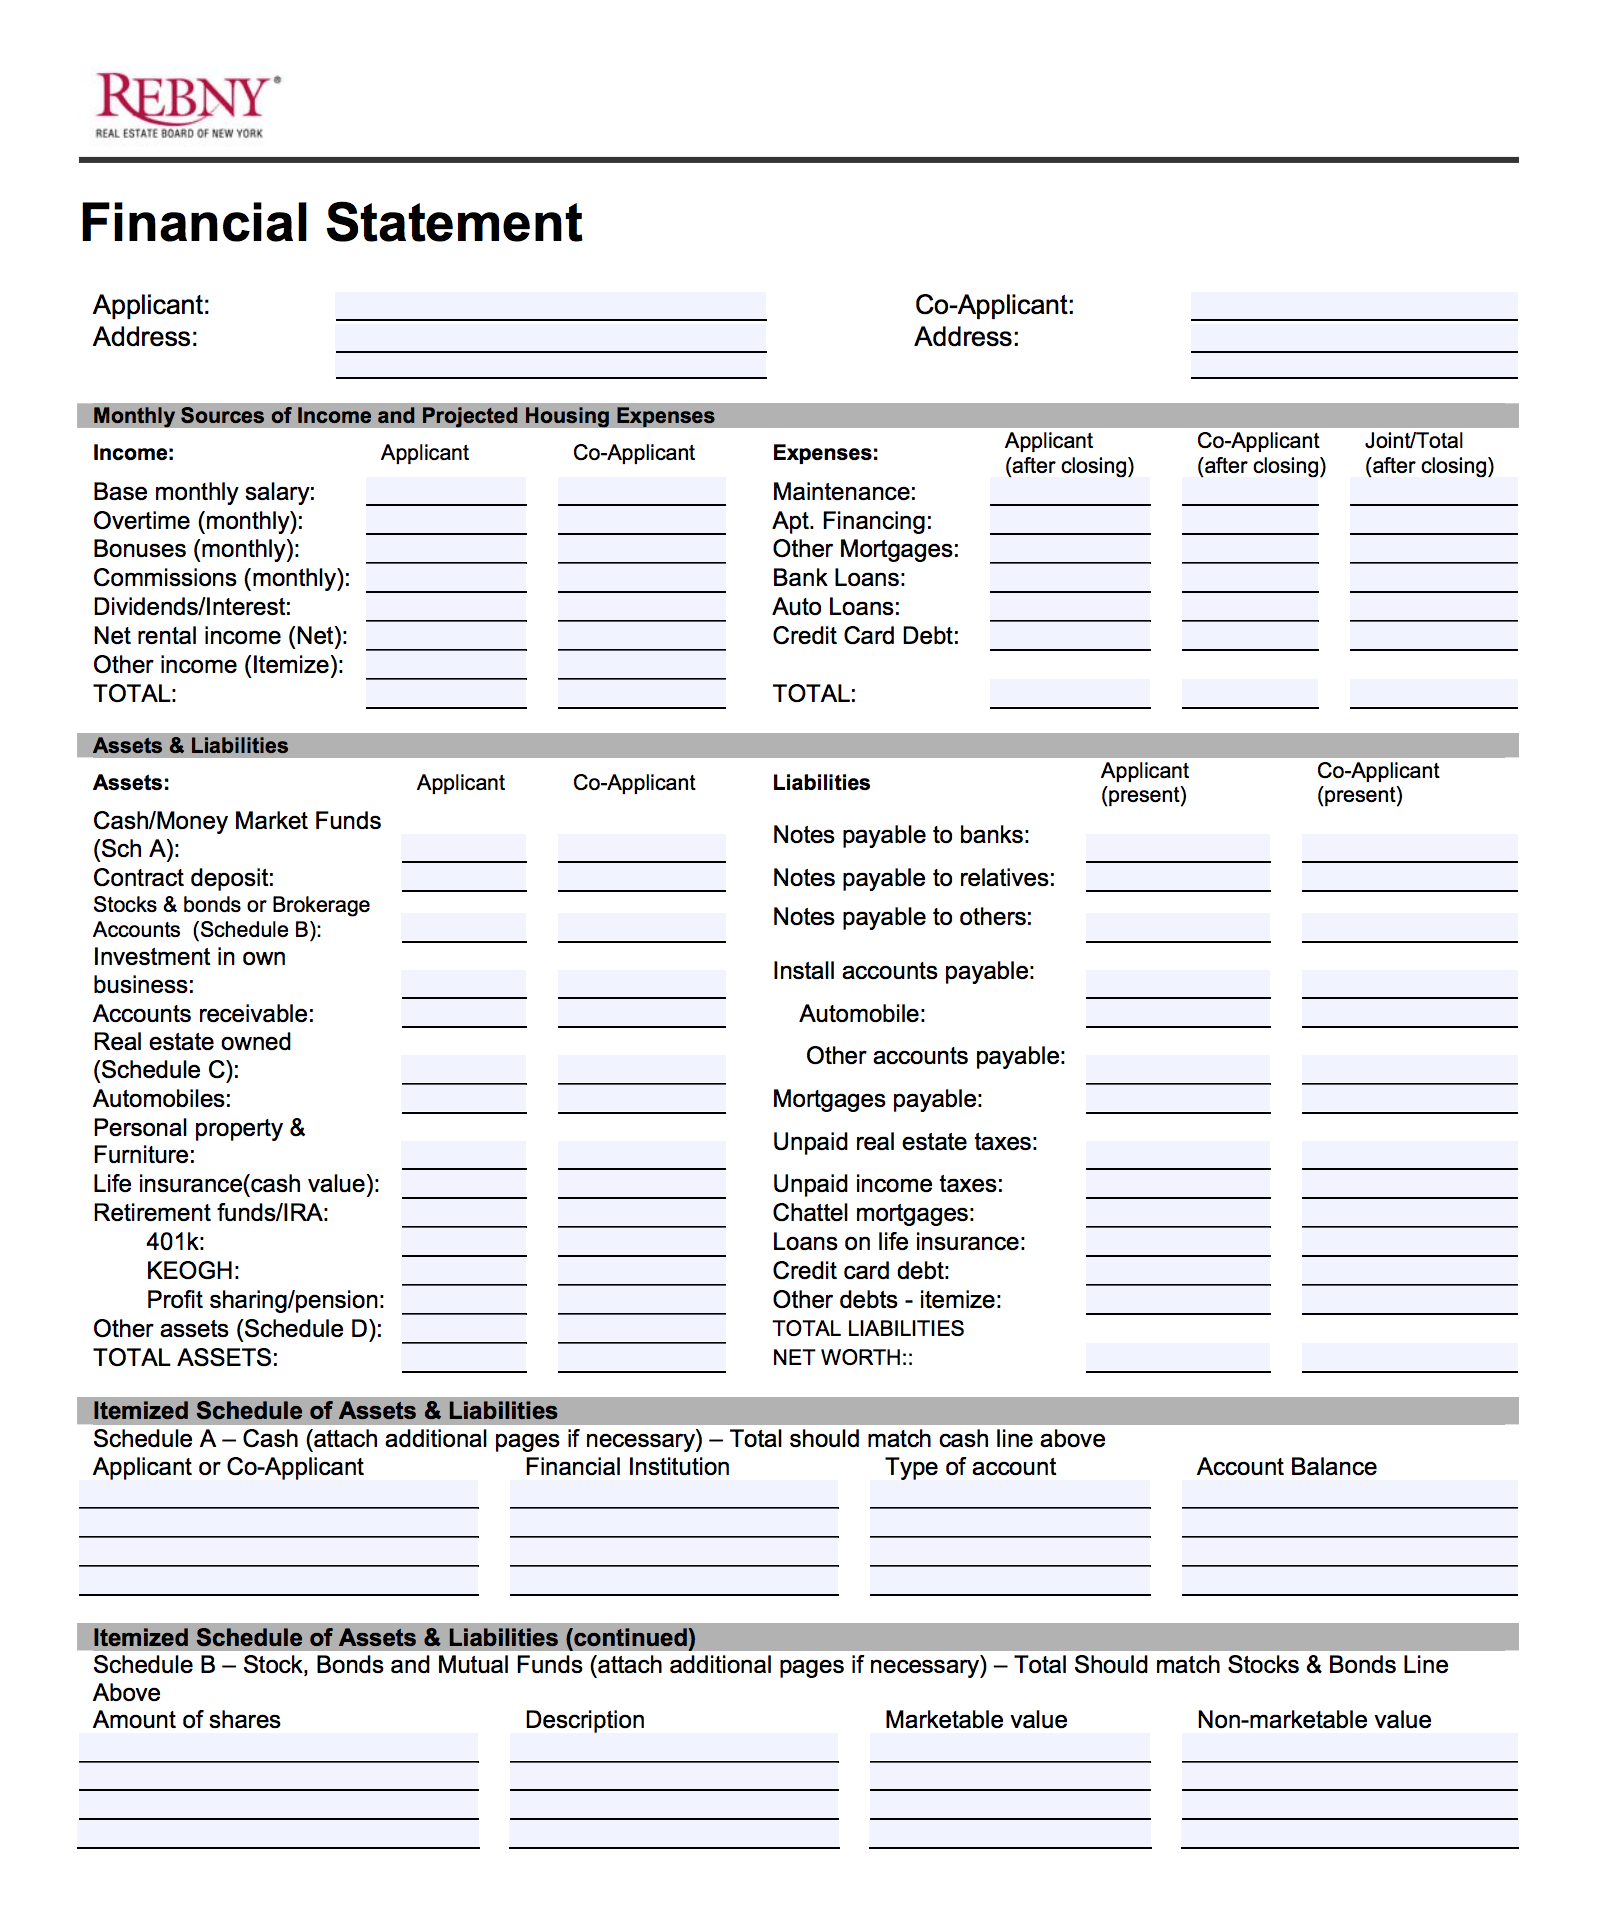 Asset And Liability Statement Template Glamorous Rebny Financial Statement Form Instructions  Financial Statement